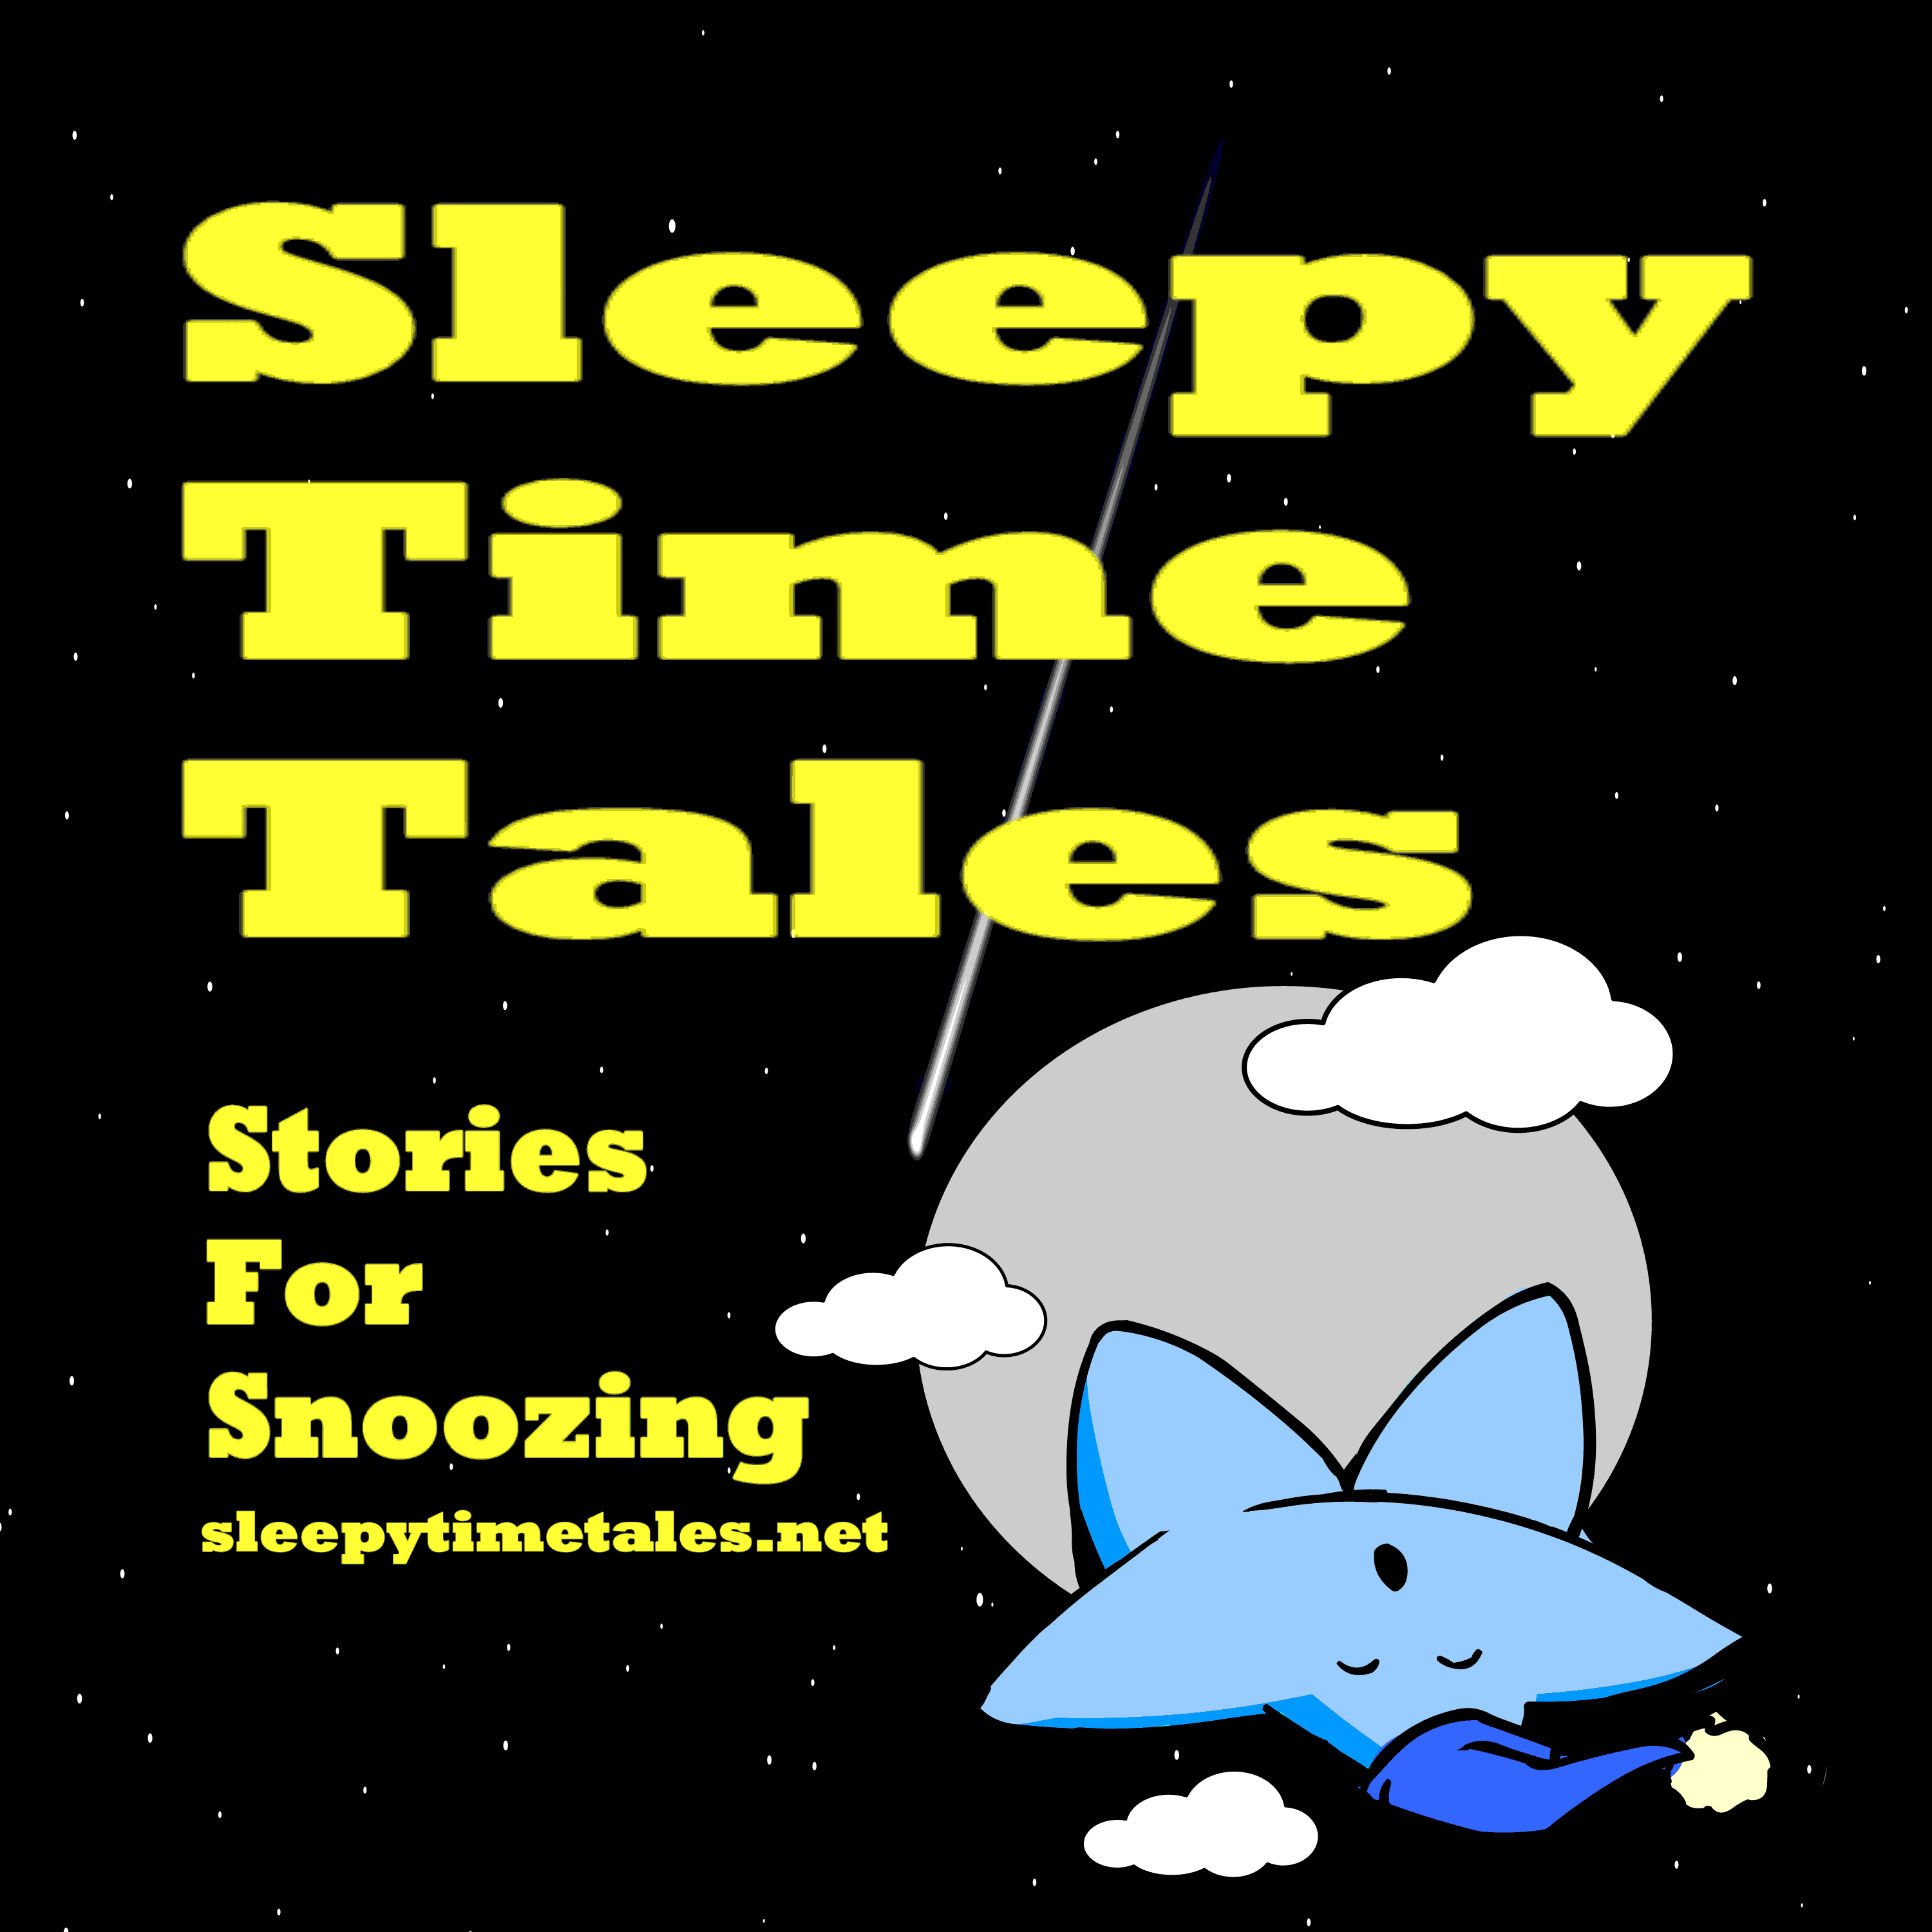 051 – The Book of Dragons - A Sleepy Bedtime Reading